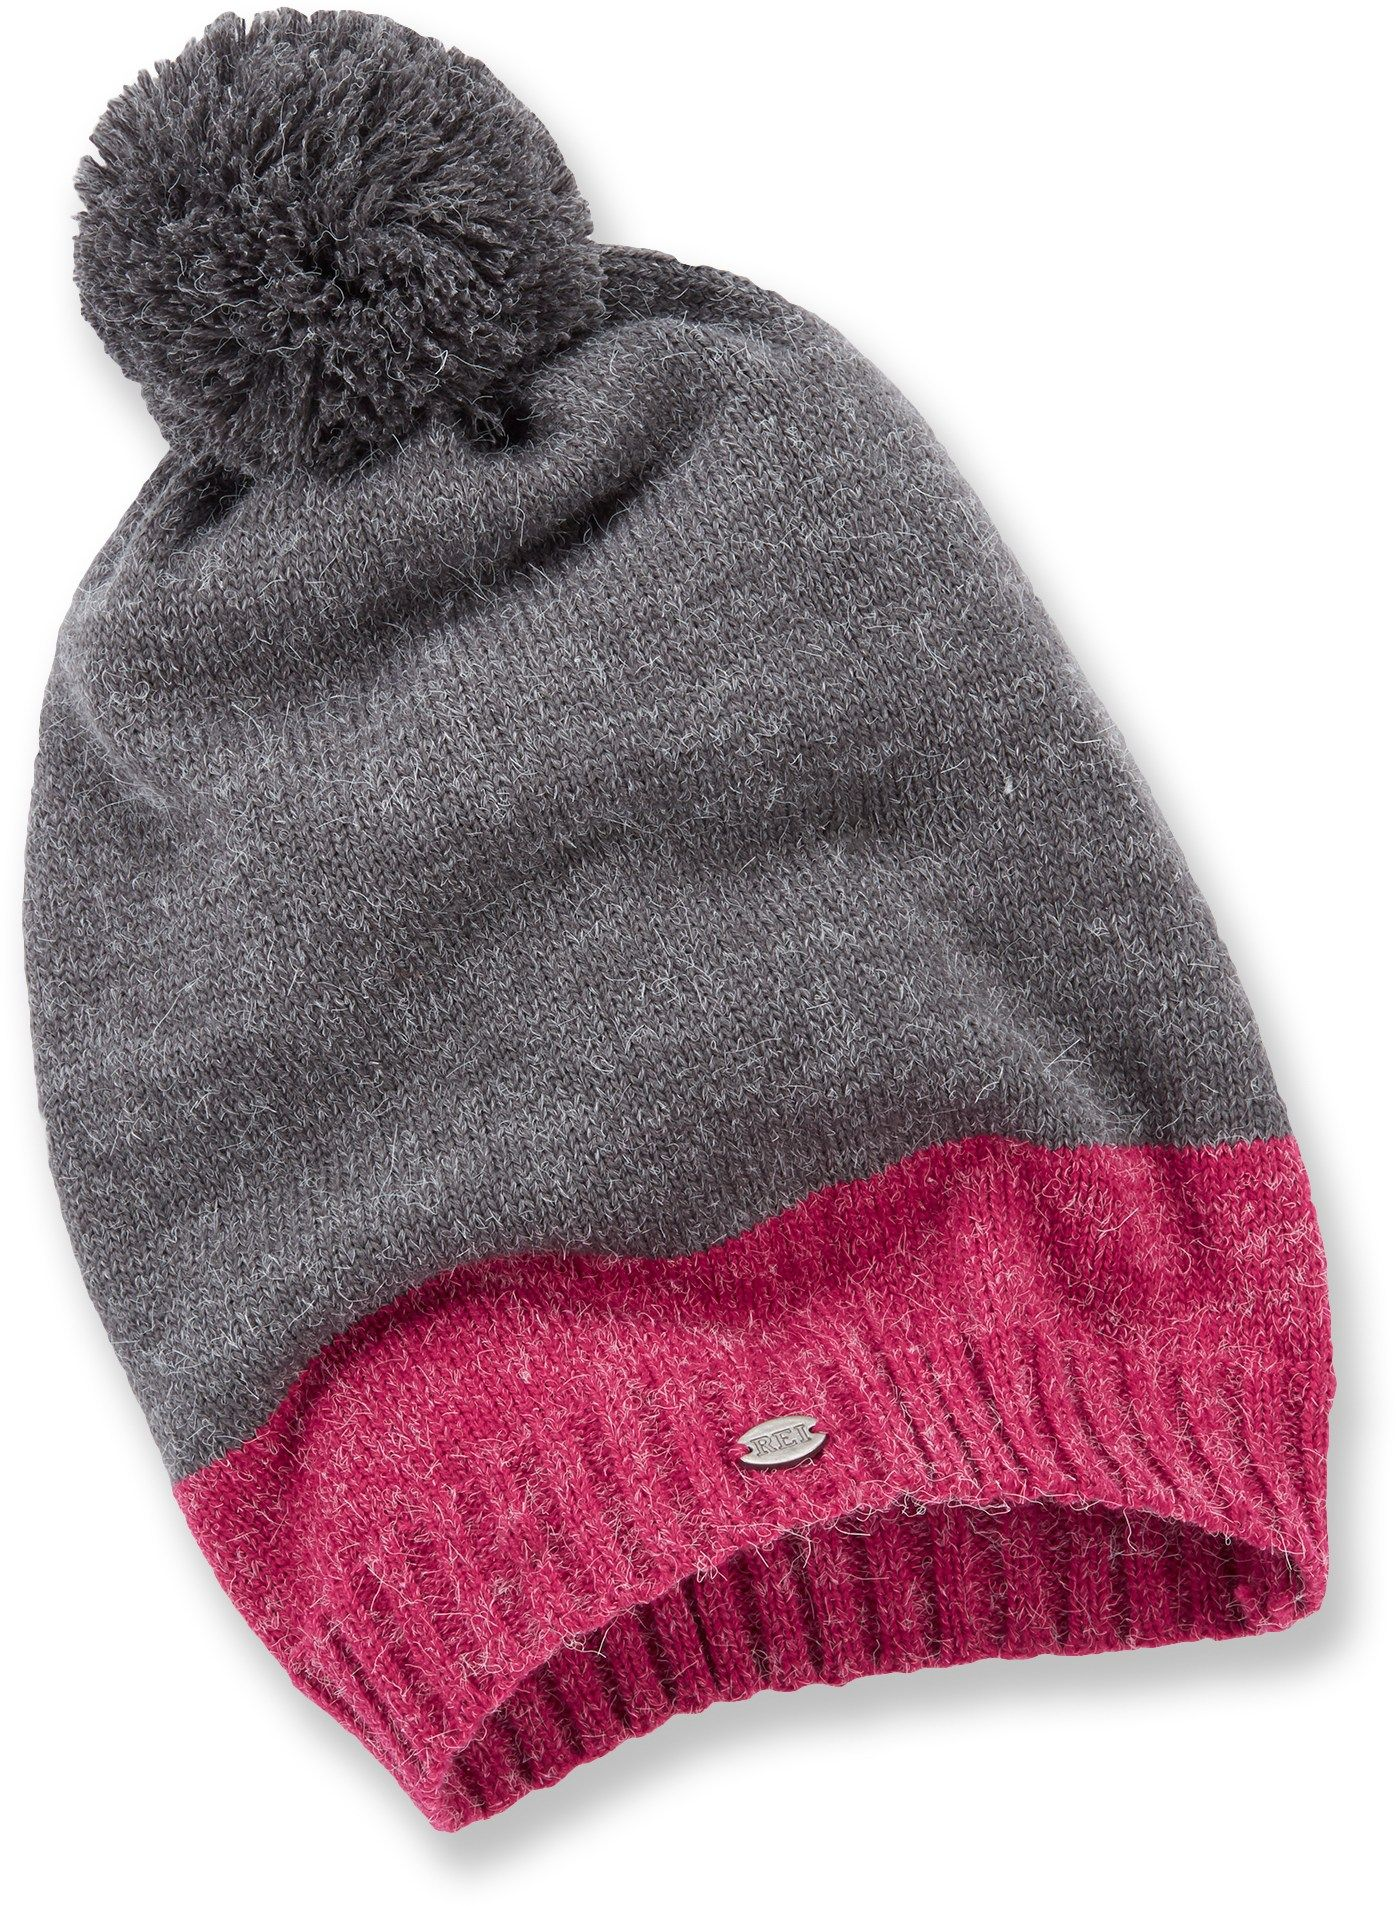 Rei Female Colorblock Beanie - Women s Winter Hats c2aff4c028